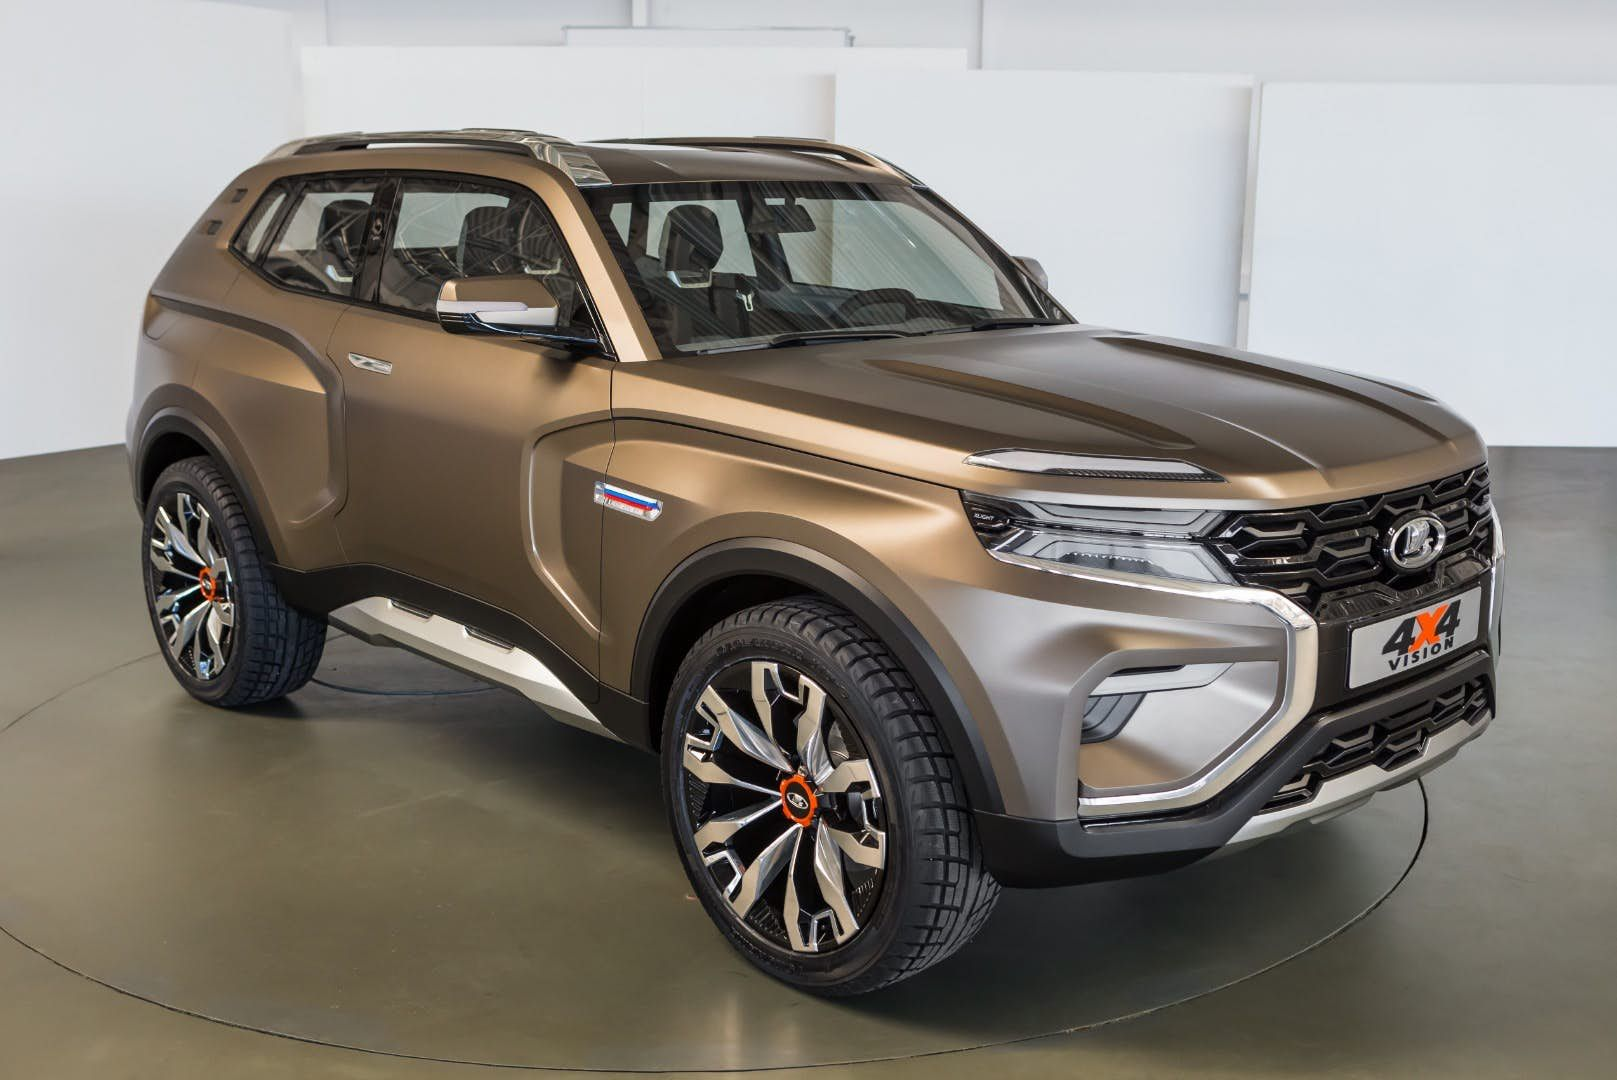 Lada 4x4 Vision Ground Clearance Looks Decent And It Should Handle Some Steep Approach Angles Super Luxury Cars Concept Cars Suv